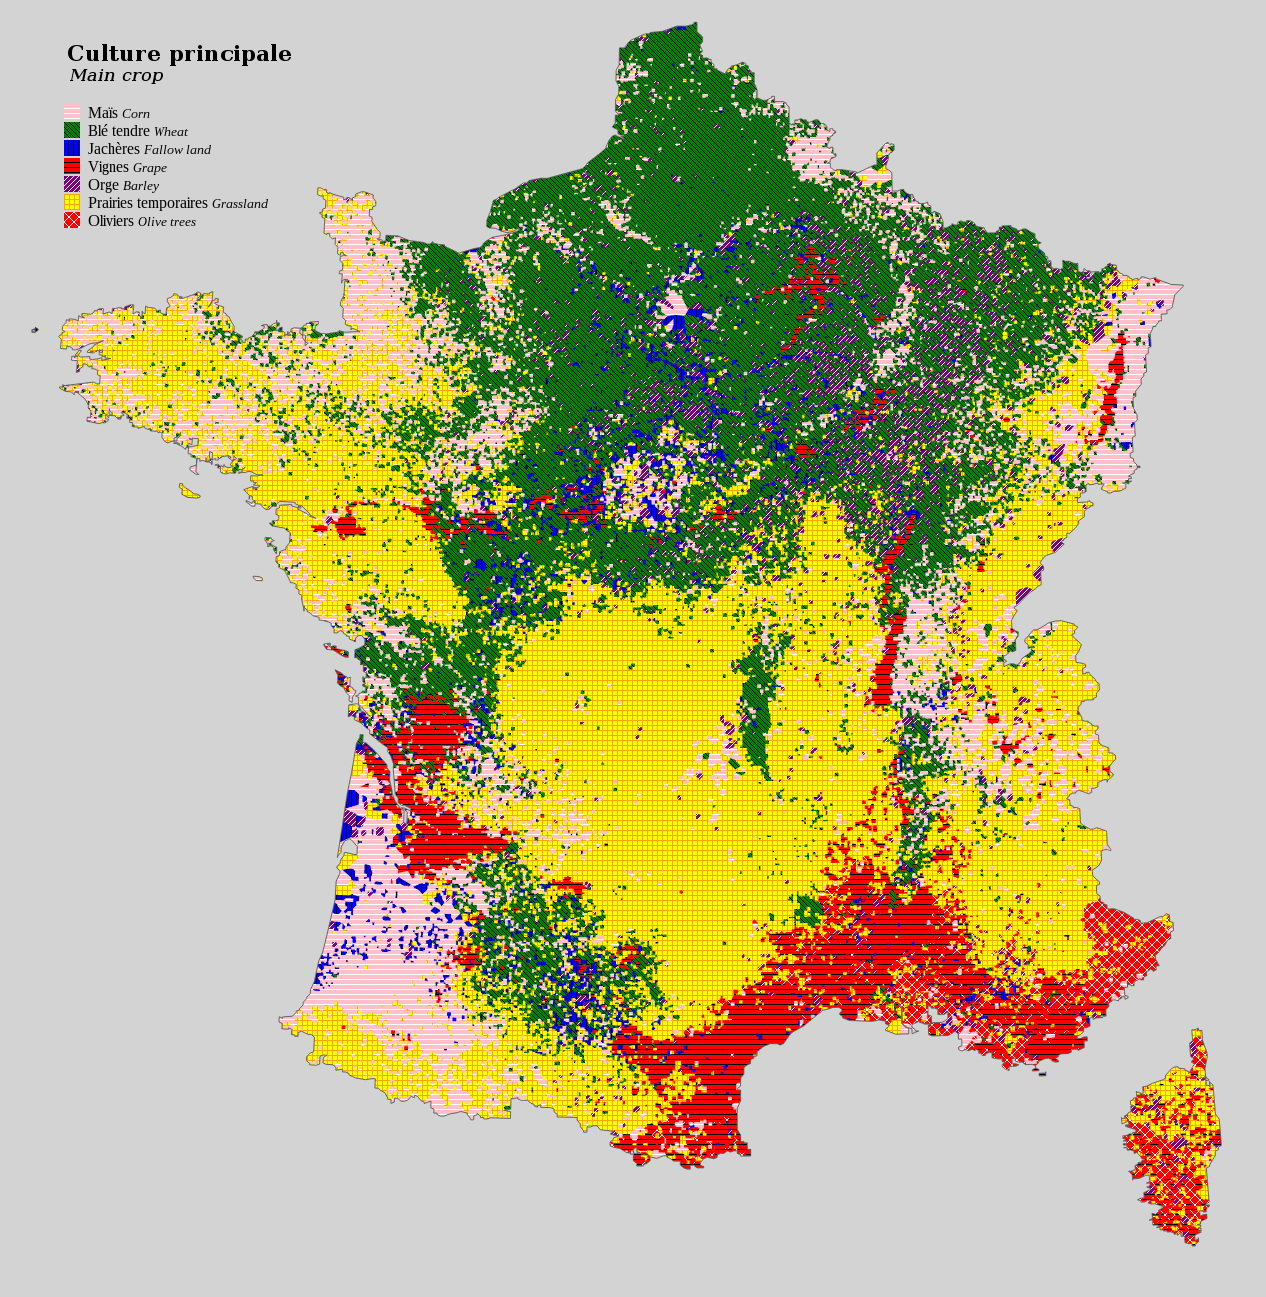 Agricultural land use in France